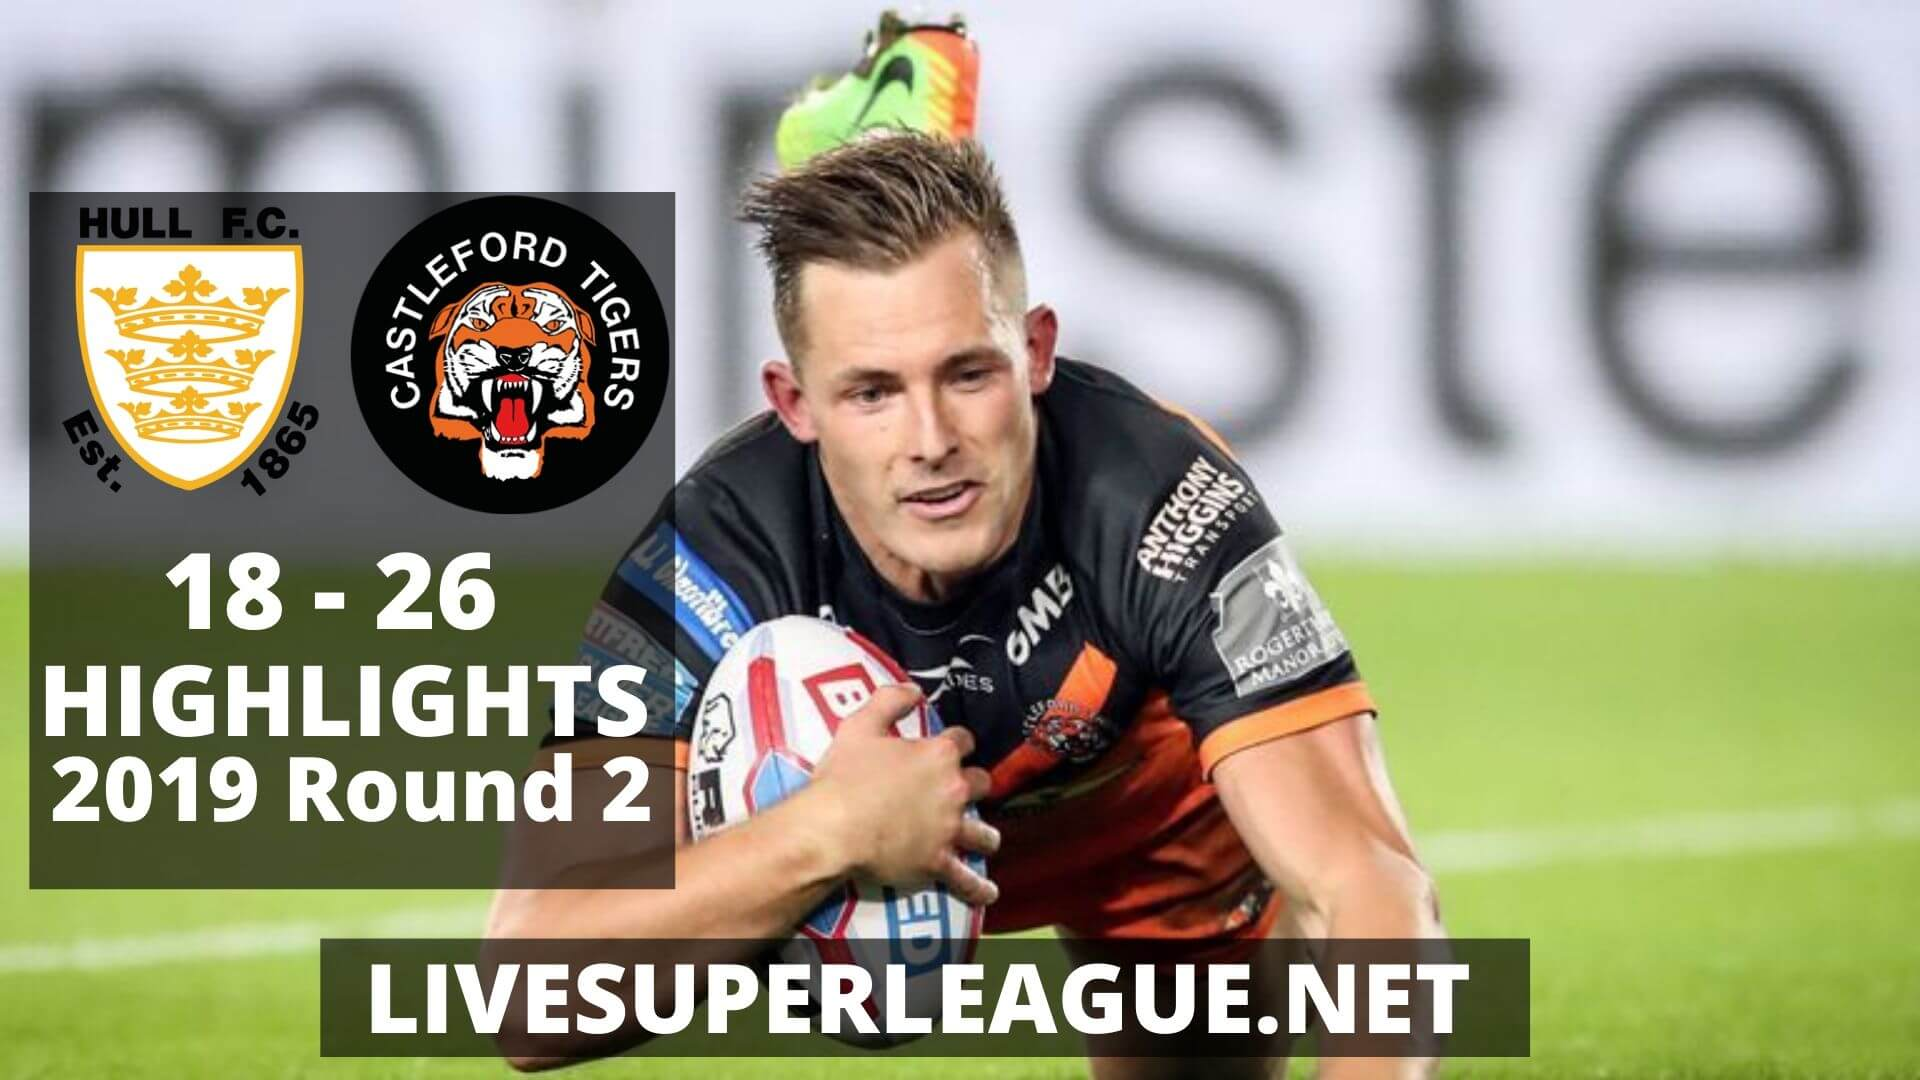 Hull F.C Vs Castleford Tigers Highlights 2019 Round 2